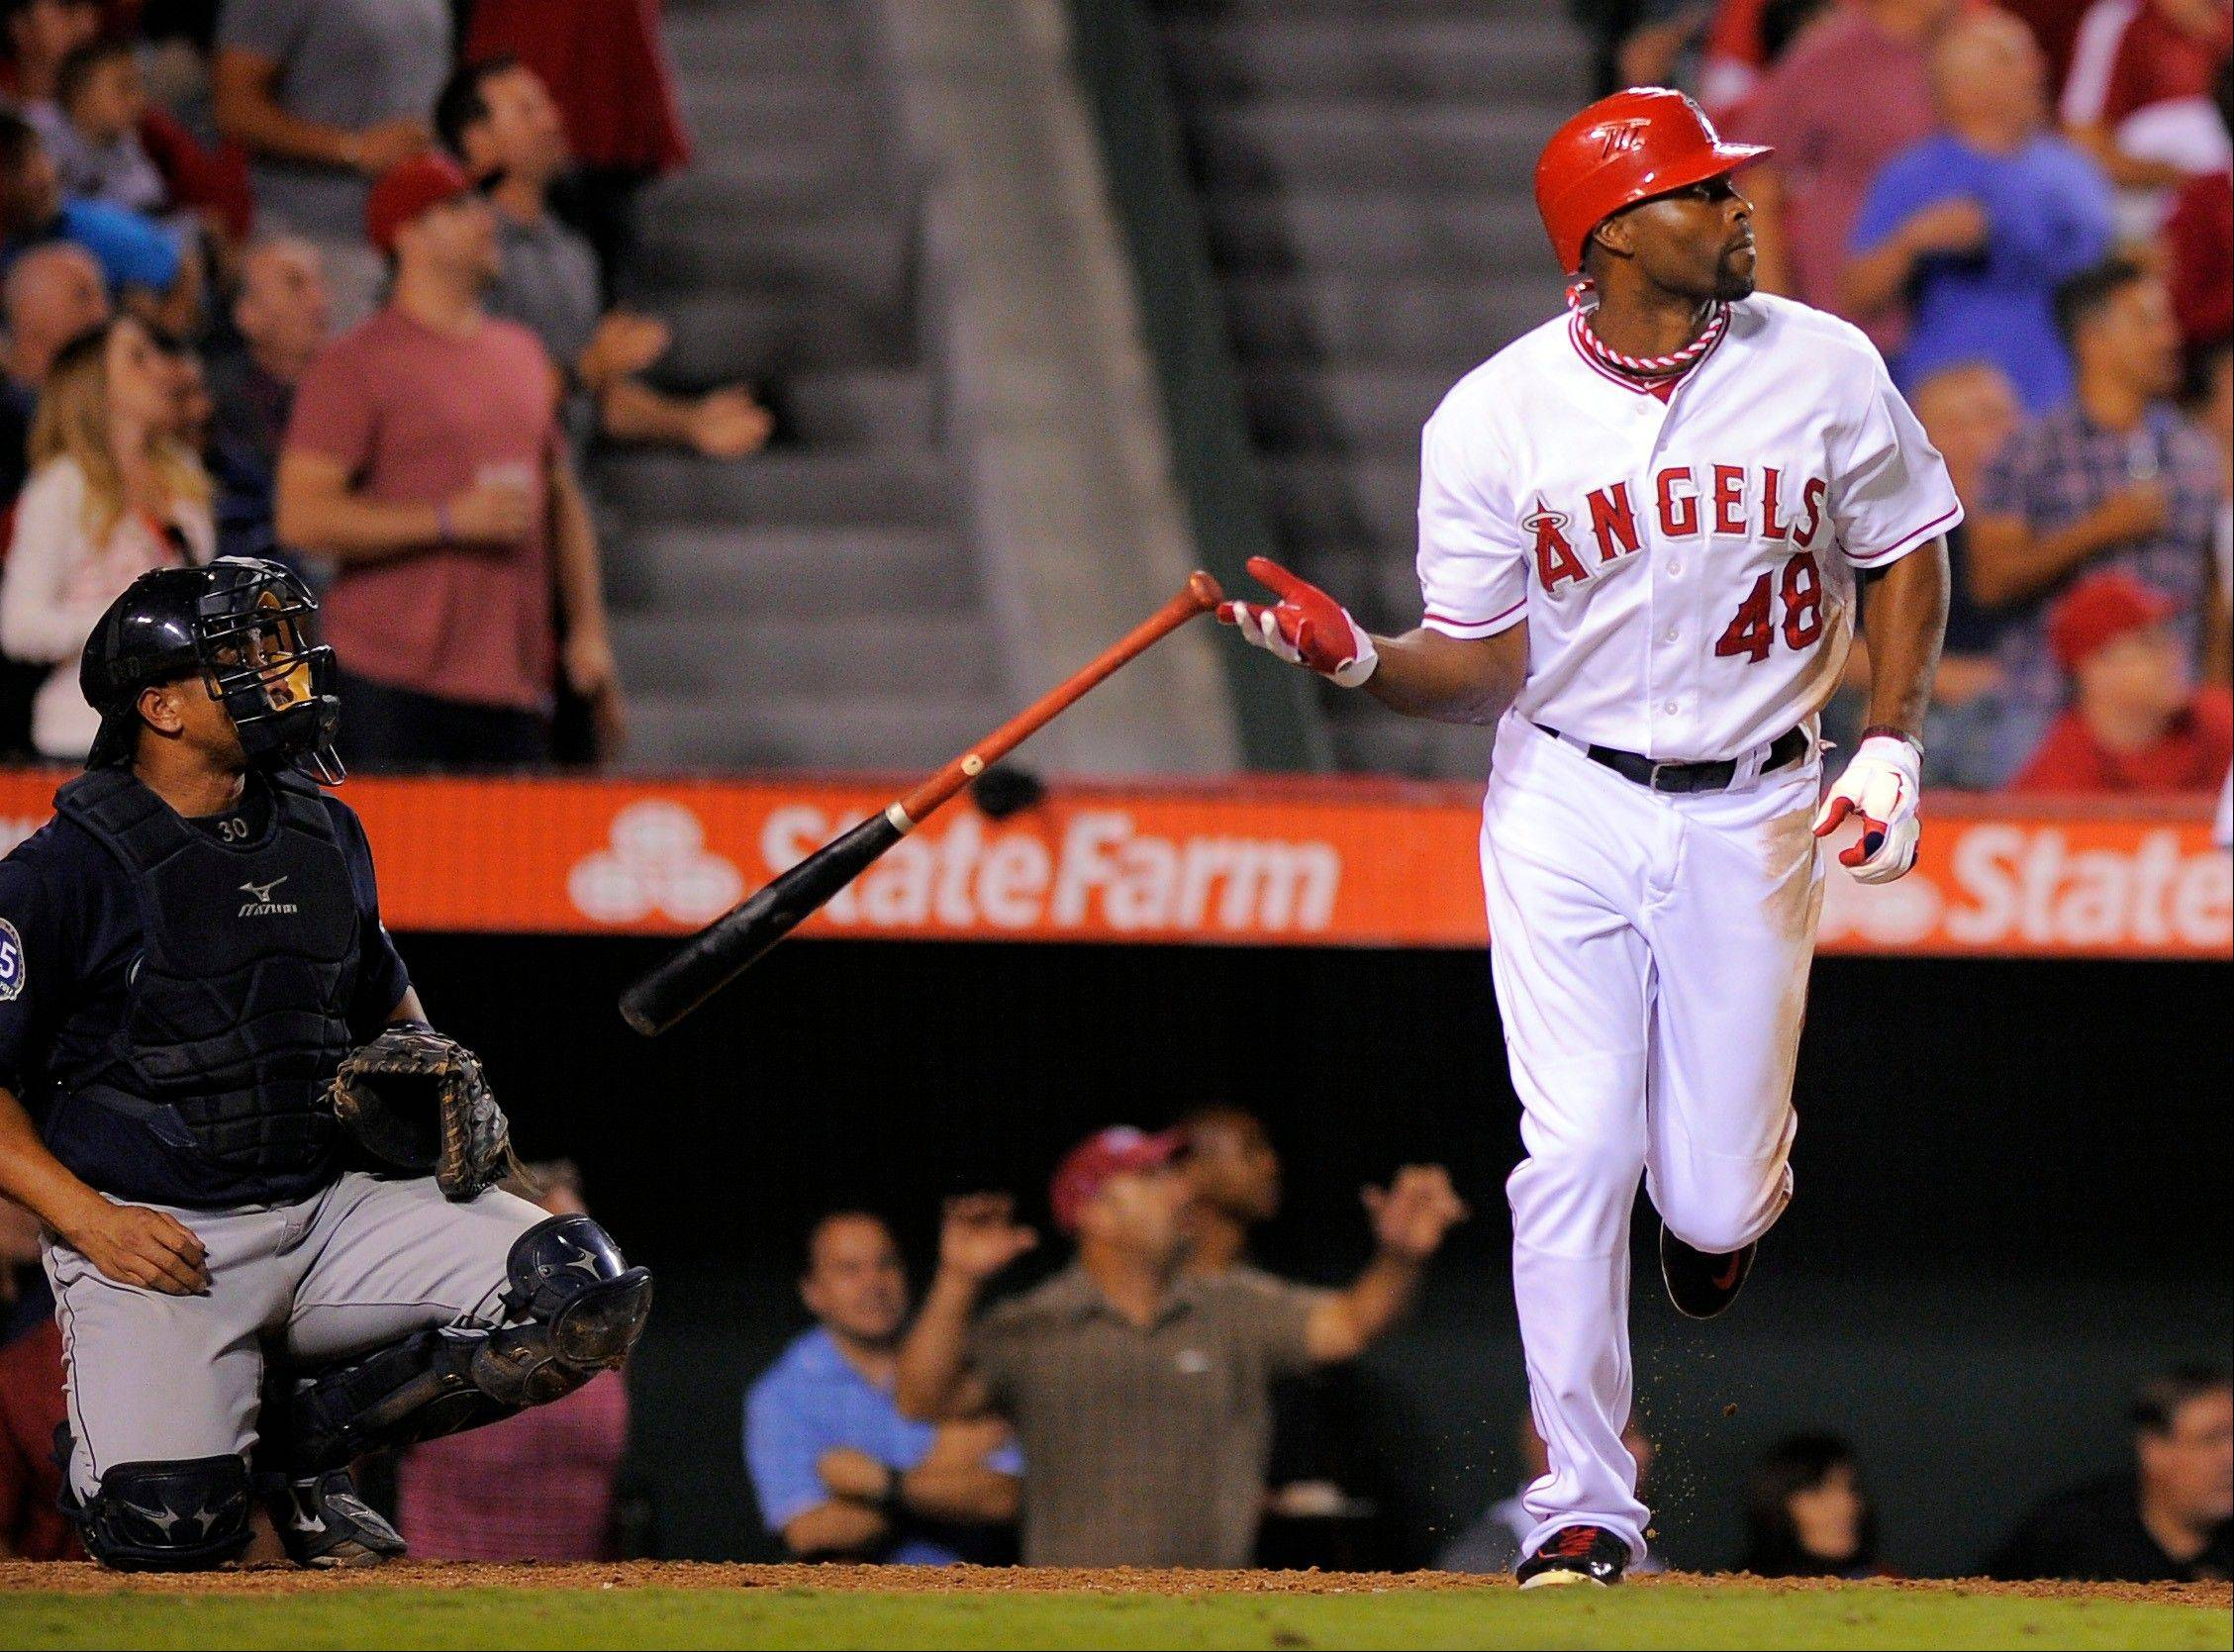 Los Angeles Angels outfielder Torii Hunter, shown dropping his bat after he hit a two-run home run against Seattle, has agreed to a two-year deal with the Detroit Tigers, according to sources.